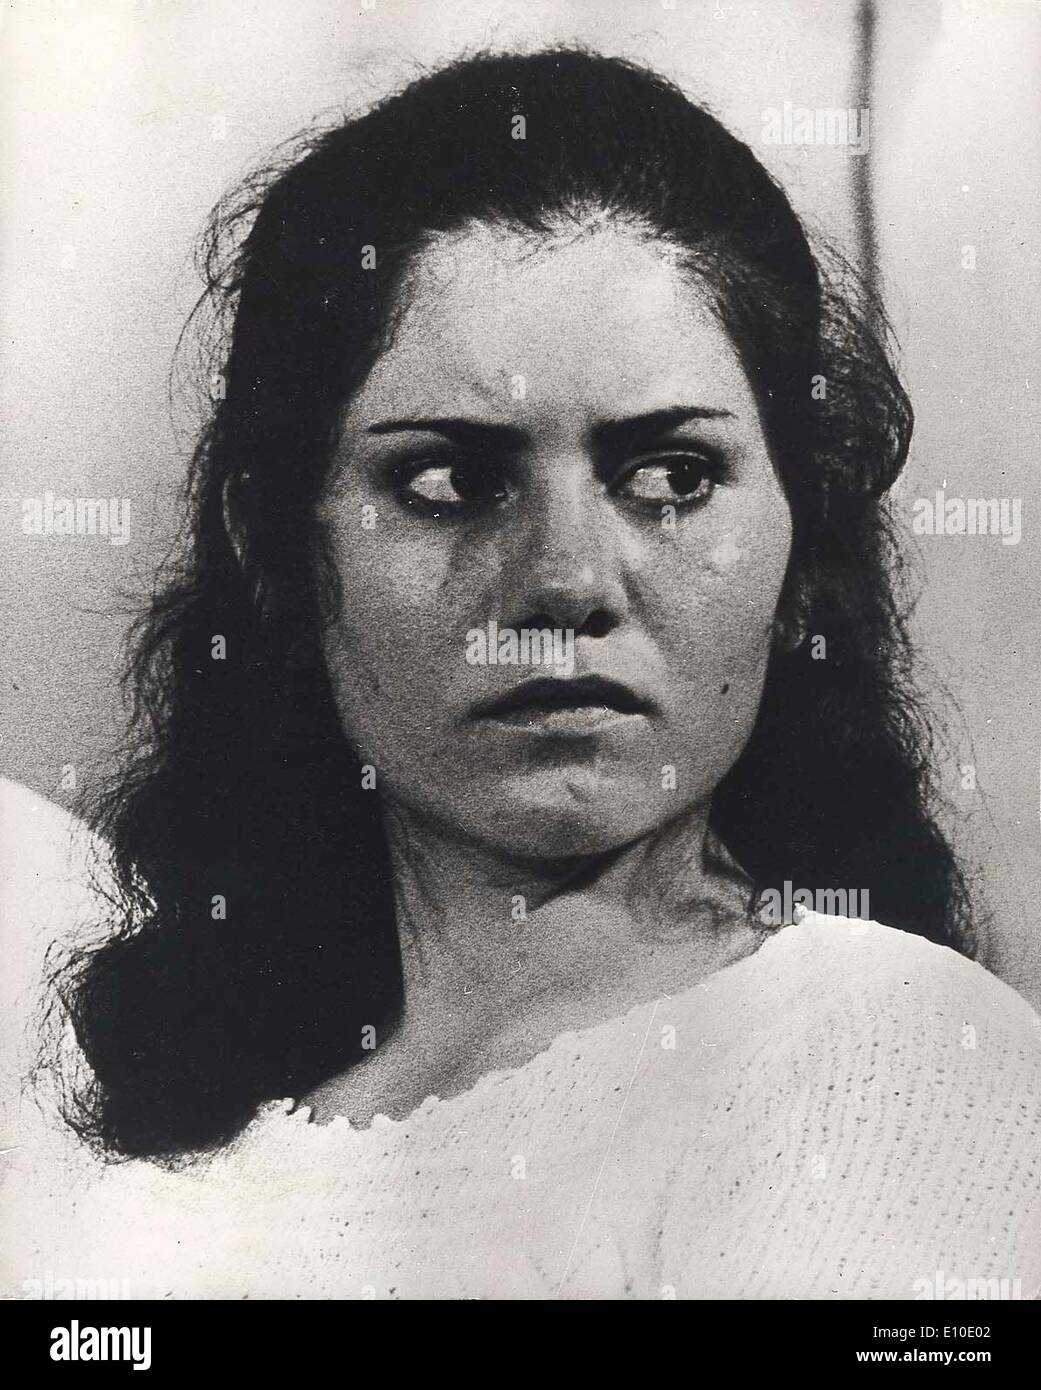 Aug 02, 1972 - Zrifin, Israel - THERESE HALASSEH one of the Arab girls that skyjacked Sabena airliner.. - Stock Image